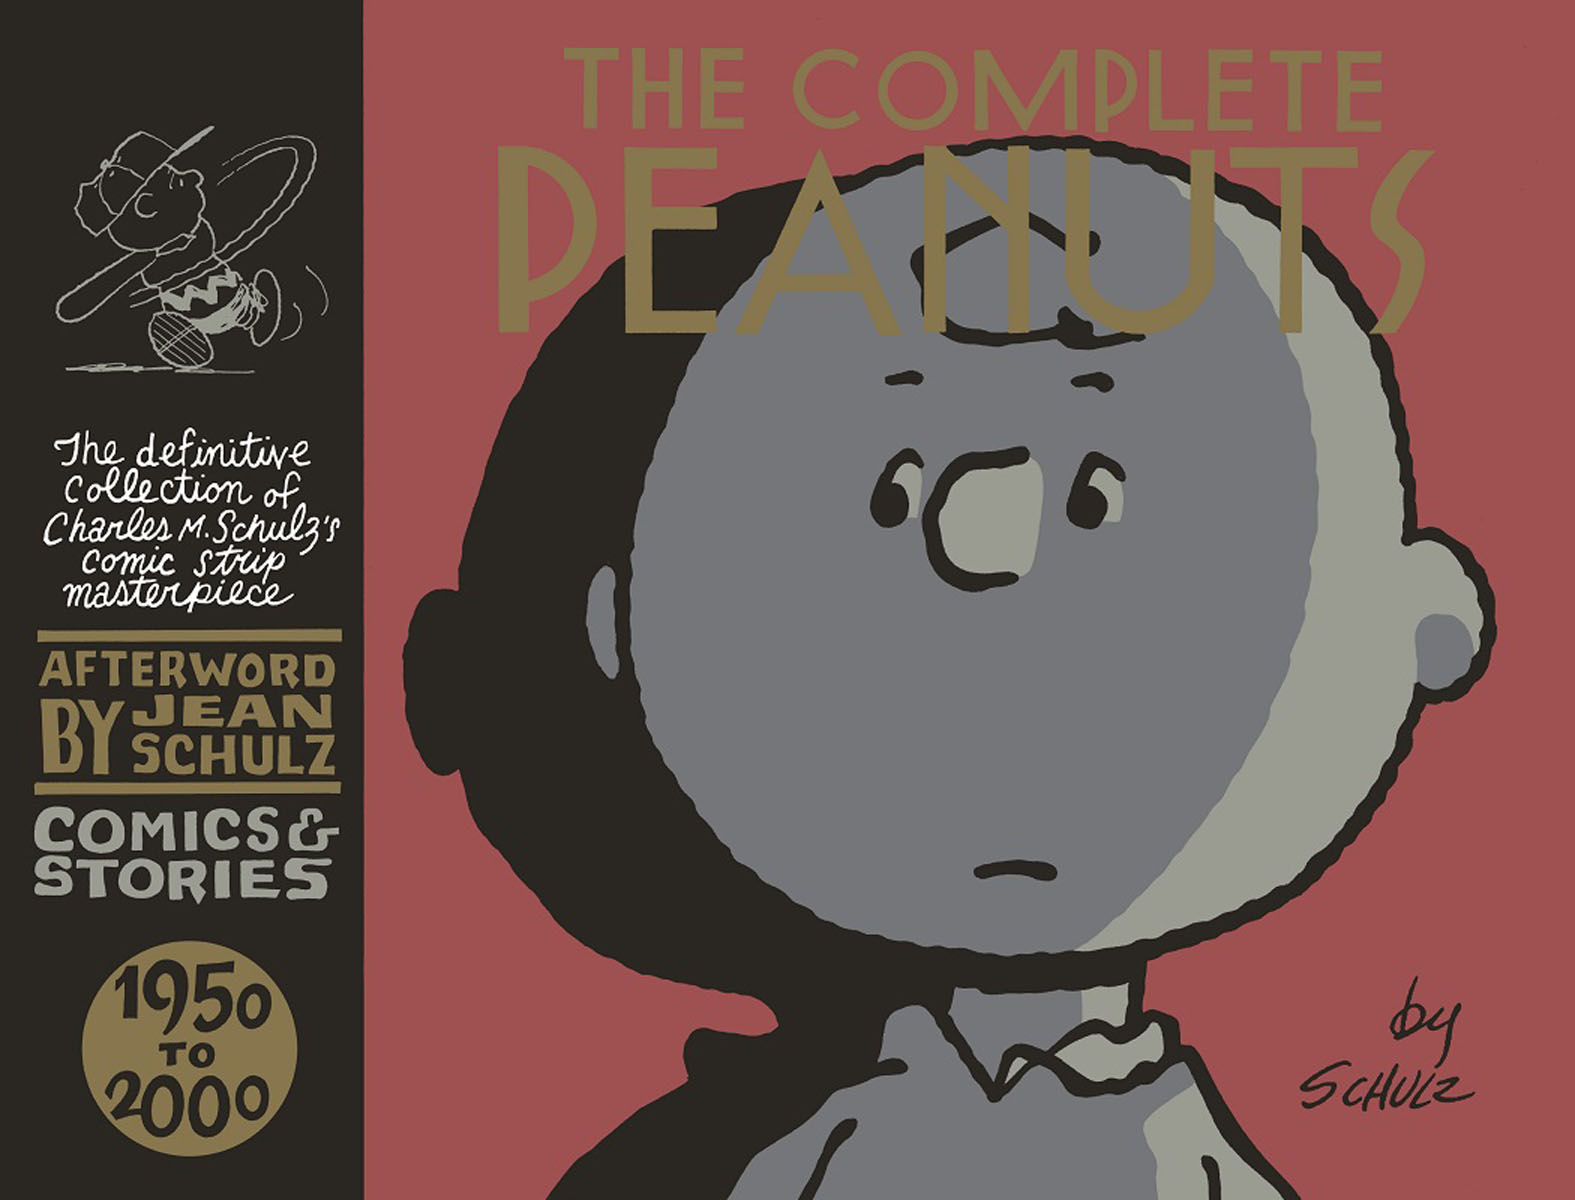 The Complete Peanuts: Comics & Stories Vol. 26 the art of battlefield 1